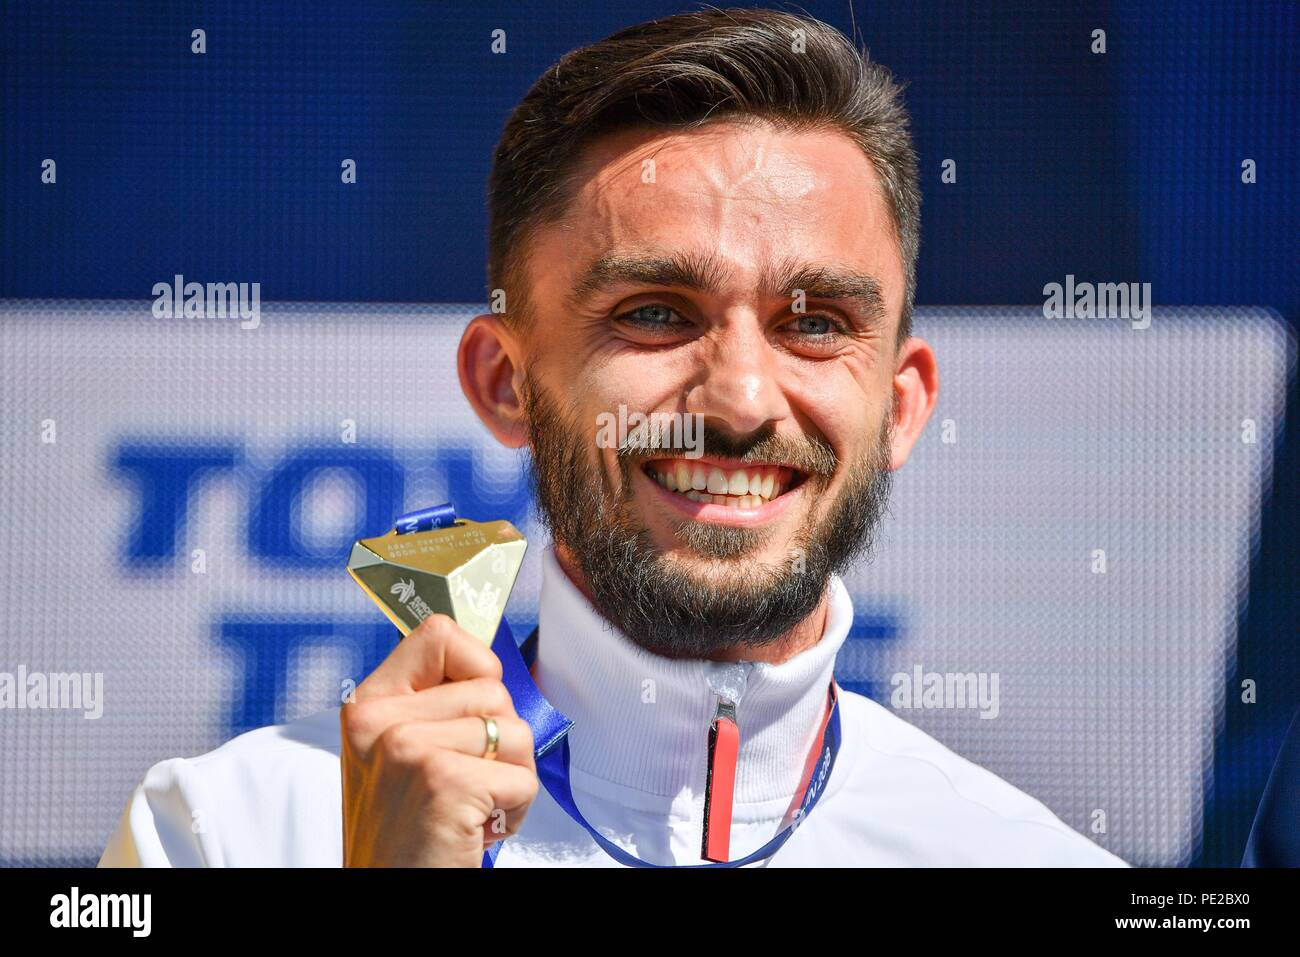 Berlin, Germany. 12th Aug, 2018. Athletics, European Championship, award ceremony on the European Mile at Breitscheidplatz, 800 meters, Men. Gold medal winner Adam Kszczot from Poland. Credit: Bernd Thissen/dpa/Alamy Live News - Stock Image